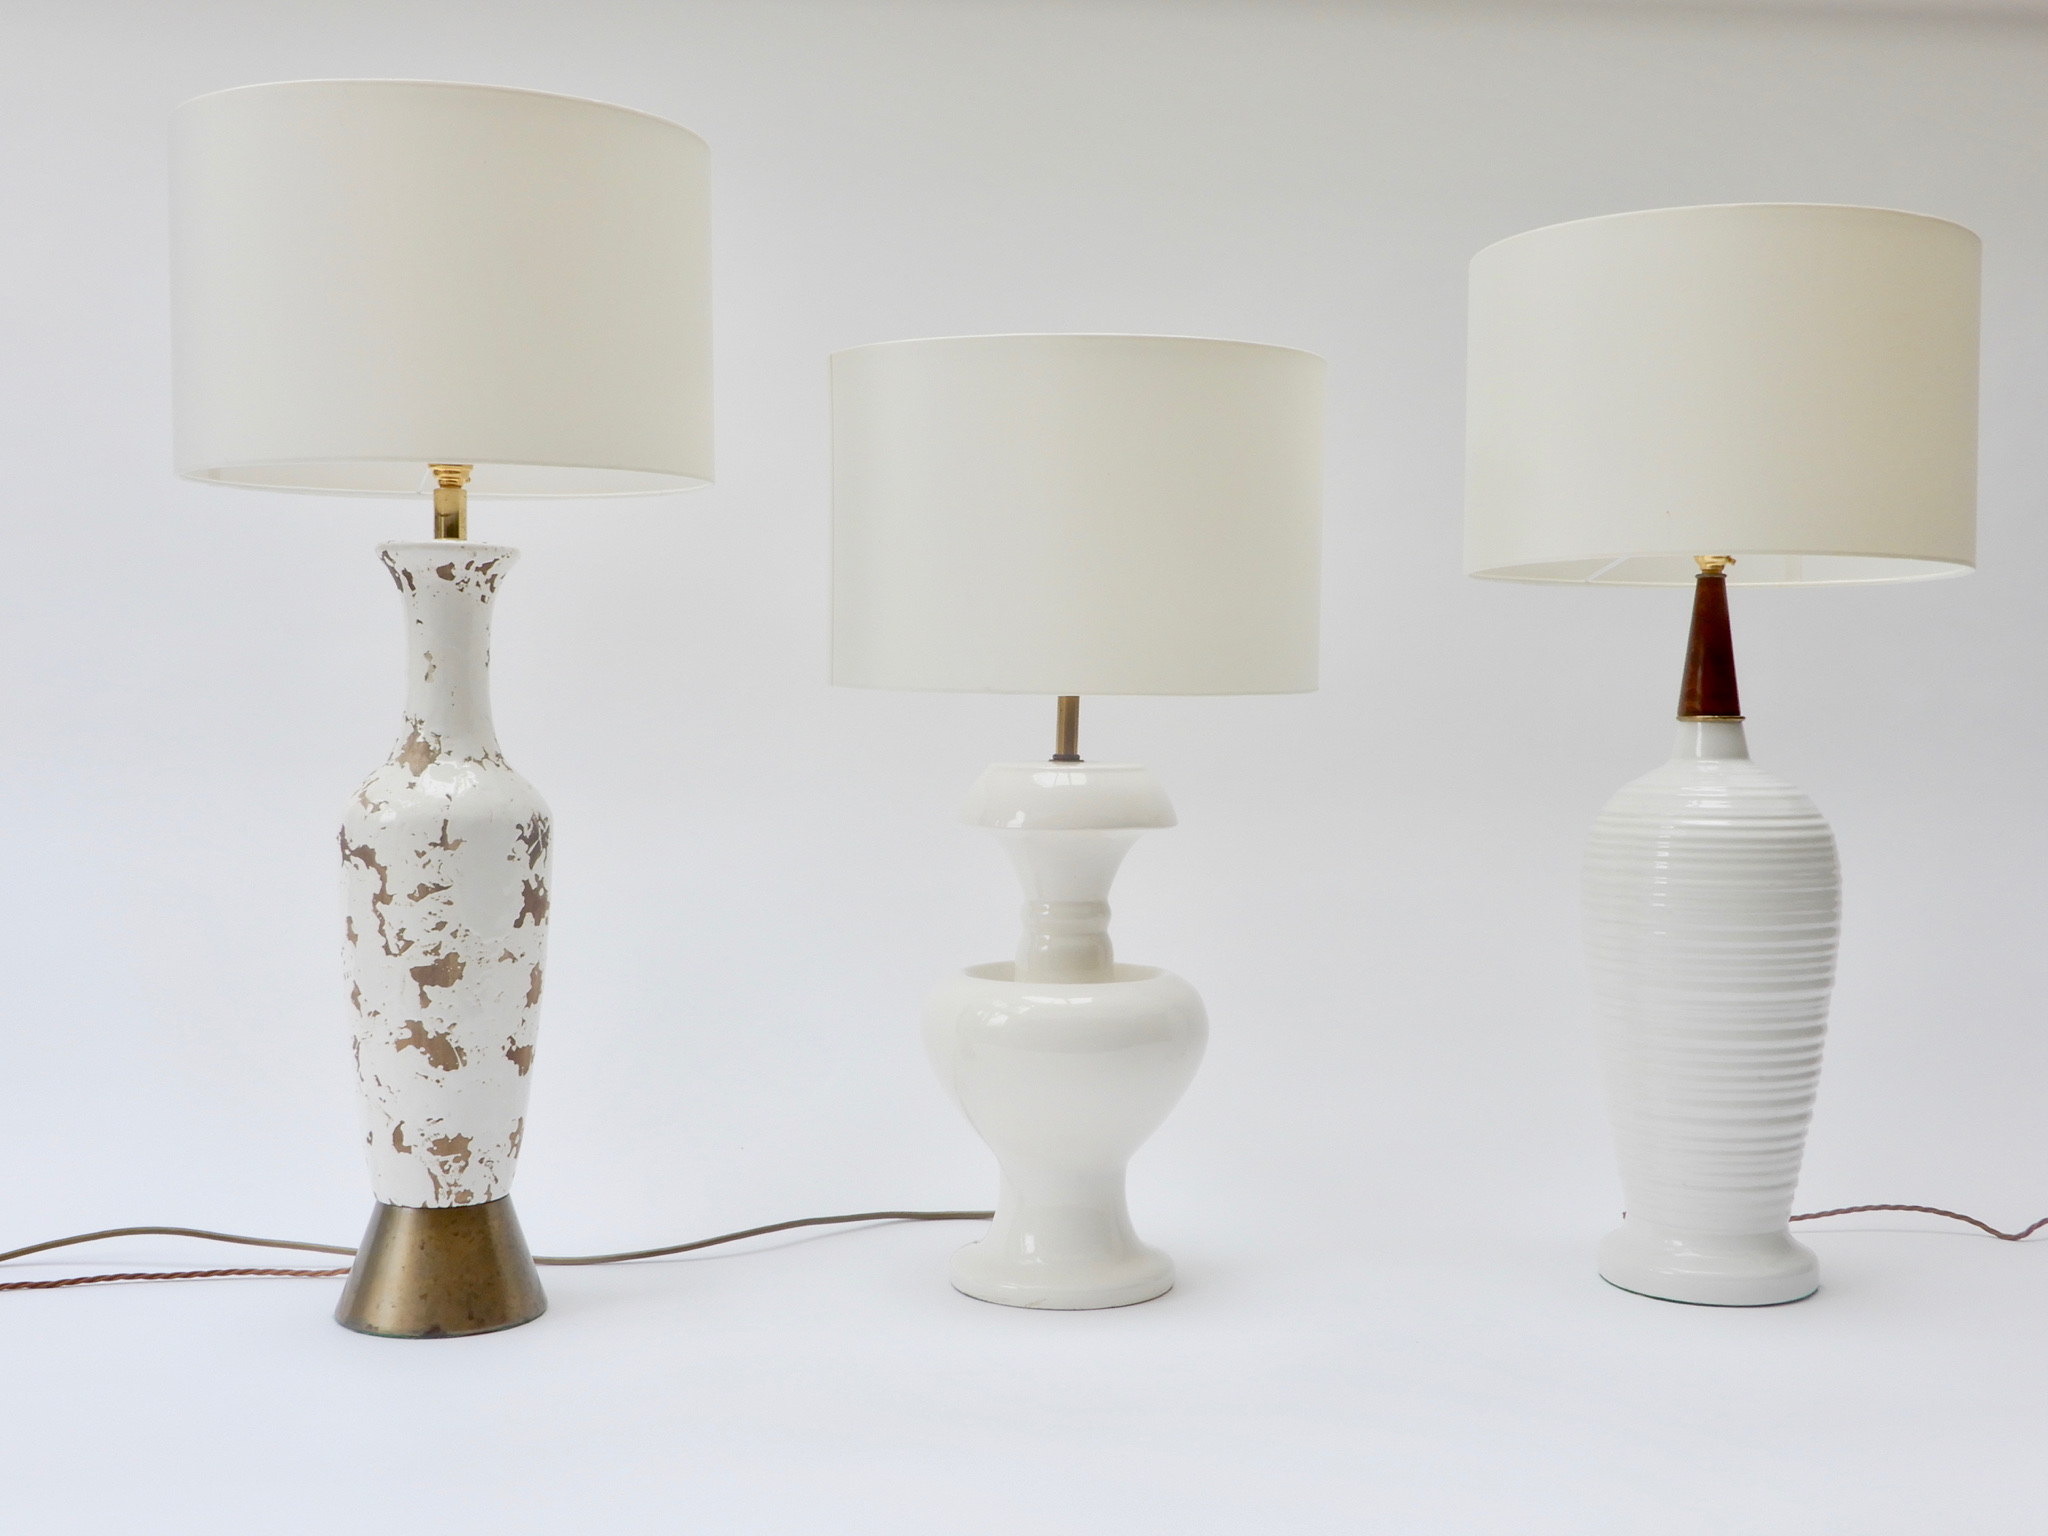 Set of 3 White Table Lamps